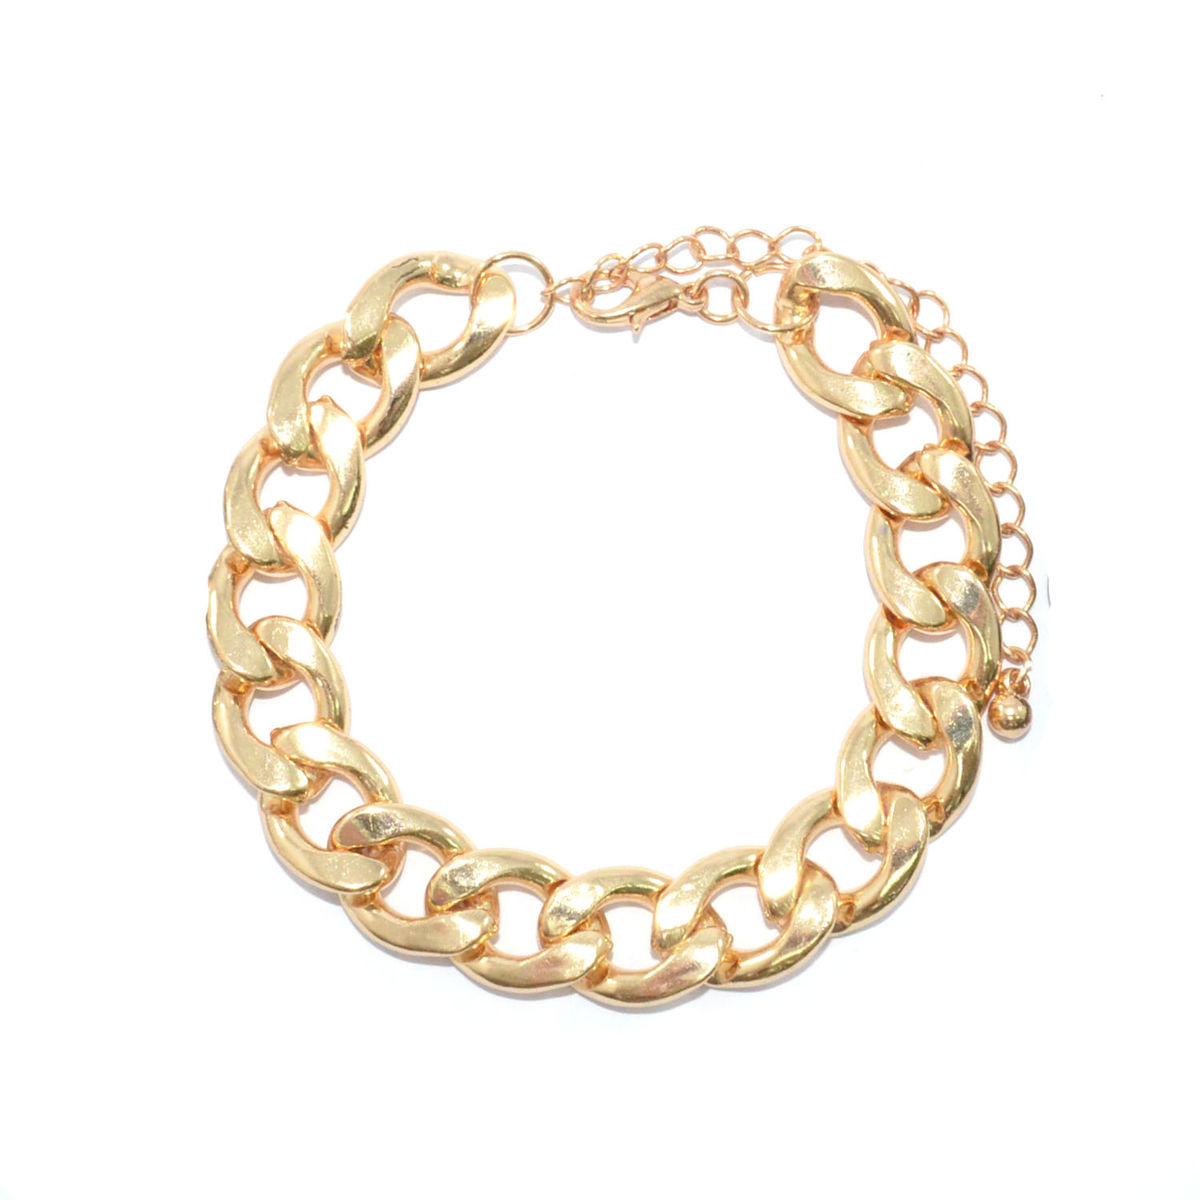 METALLIC CHUNKY CHAIN BRACELET - Rings & Tings   Online fashion store   Shop the latest trends